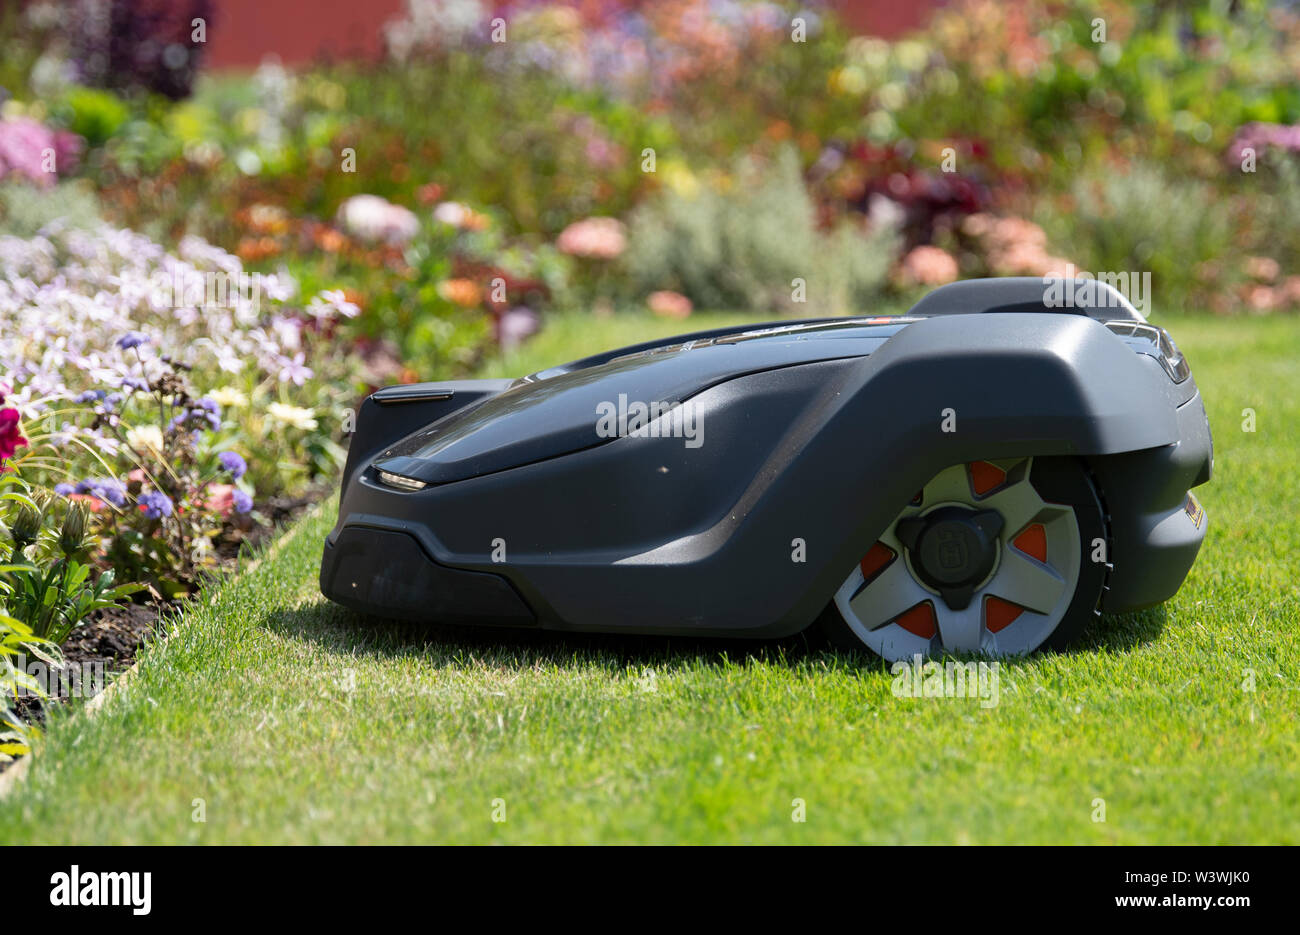 Wittstock, Germany. 17th July, 2019. A Husqvarna mowing robot drives across a meadow at the National Garden Show and turns around in front of the lawn edge. Credit: Soeren Stache/dpa/Alamy Live News - Stock Image